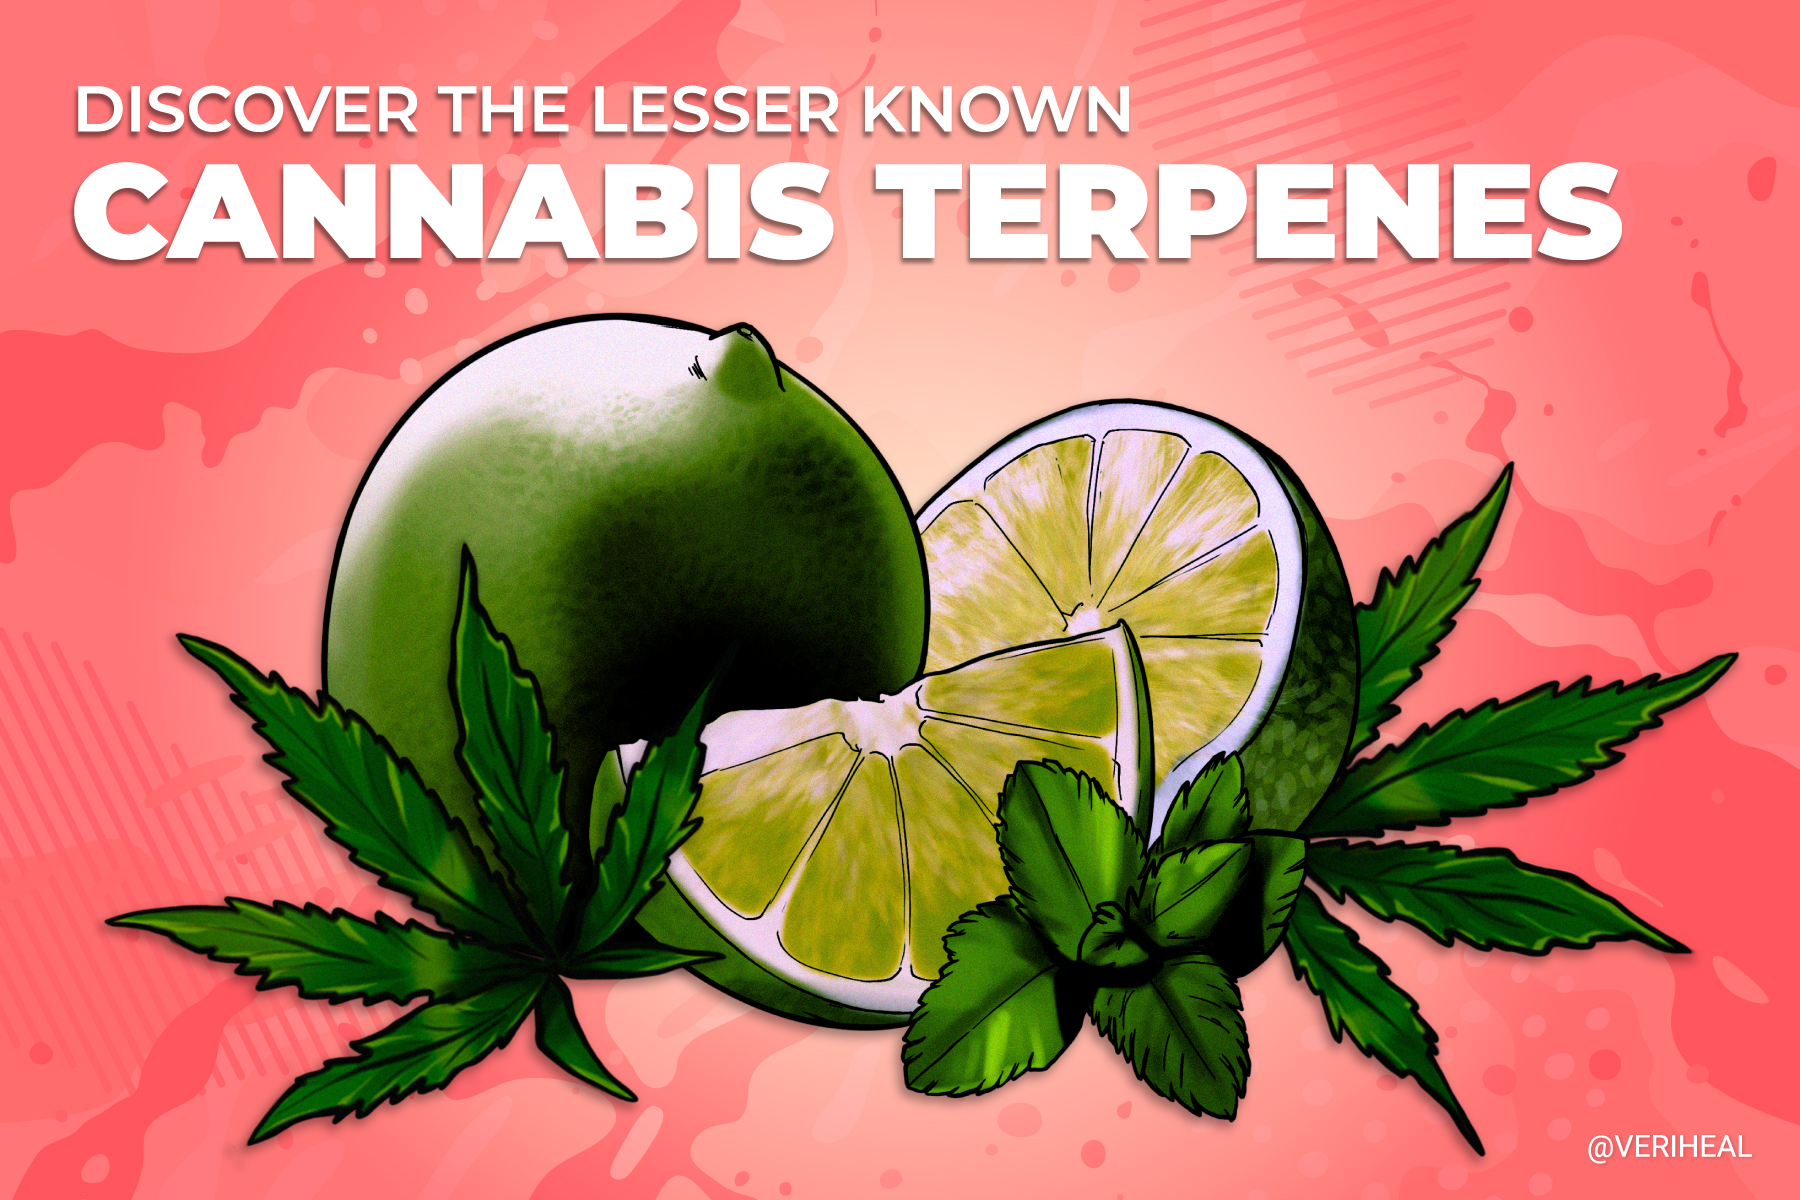 Discover The Lesser Known Cannabis Terpenes No One's Heard Of